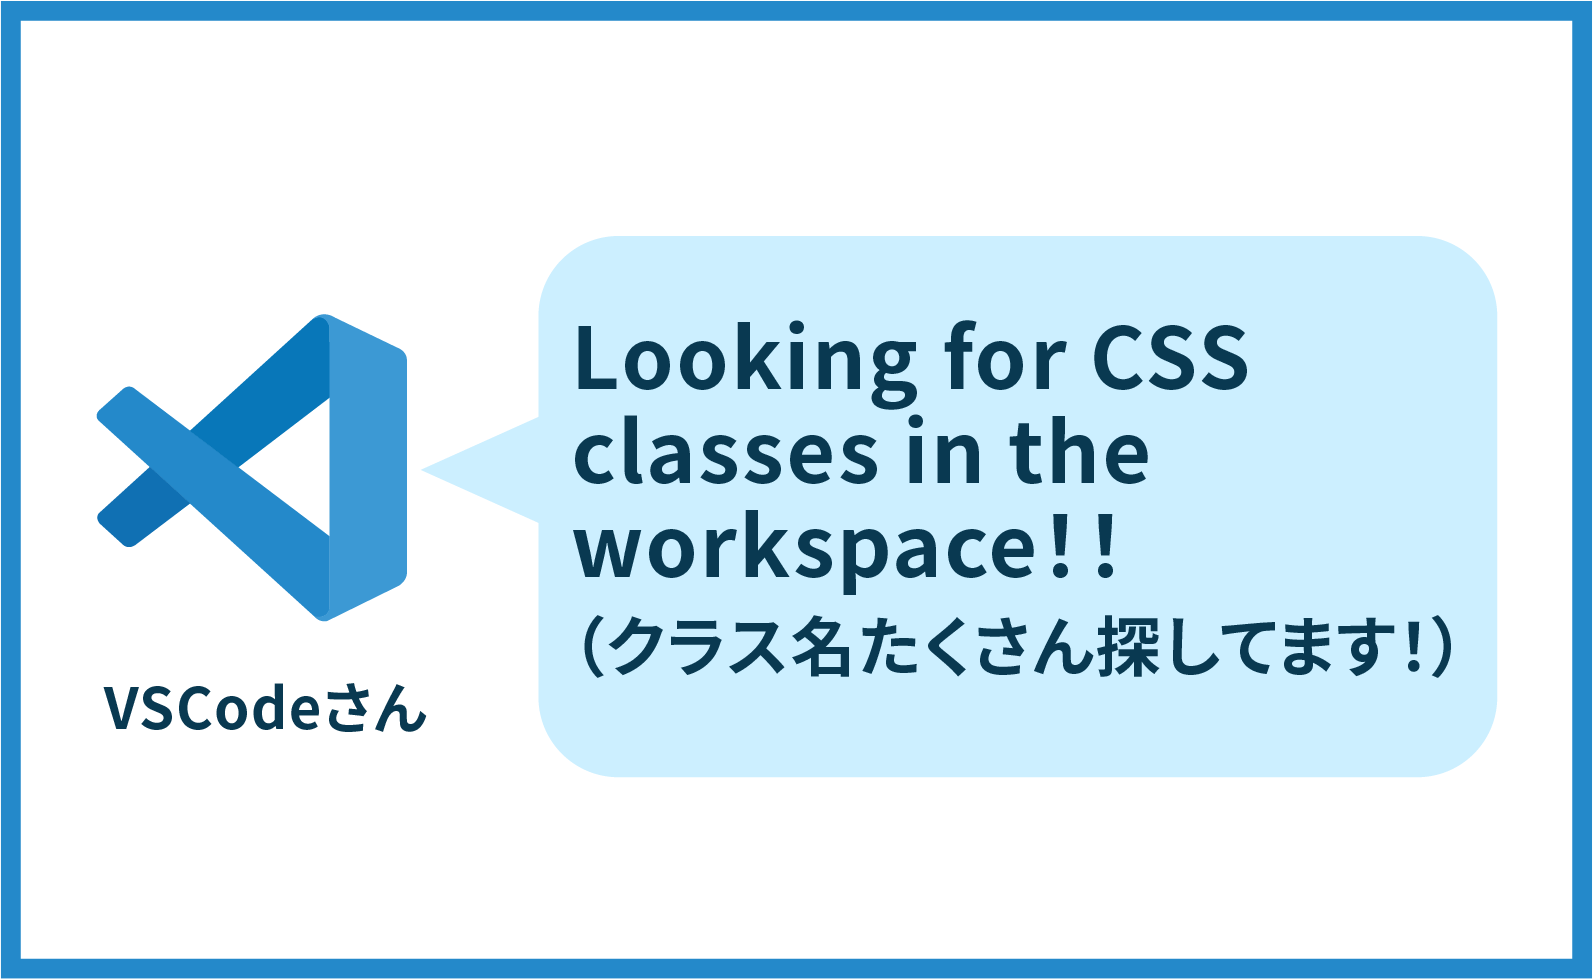 VSCodeで「Looking for CSS classes in the workspace」に悩まされた話